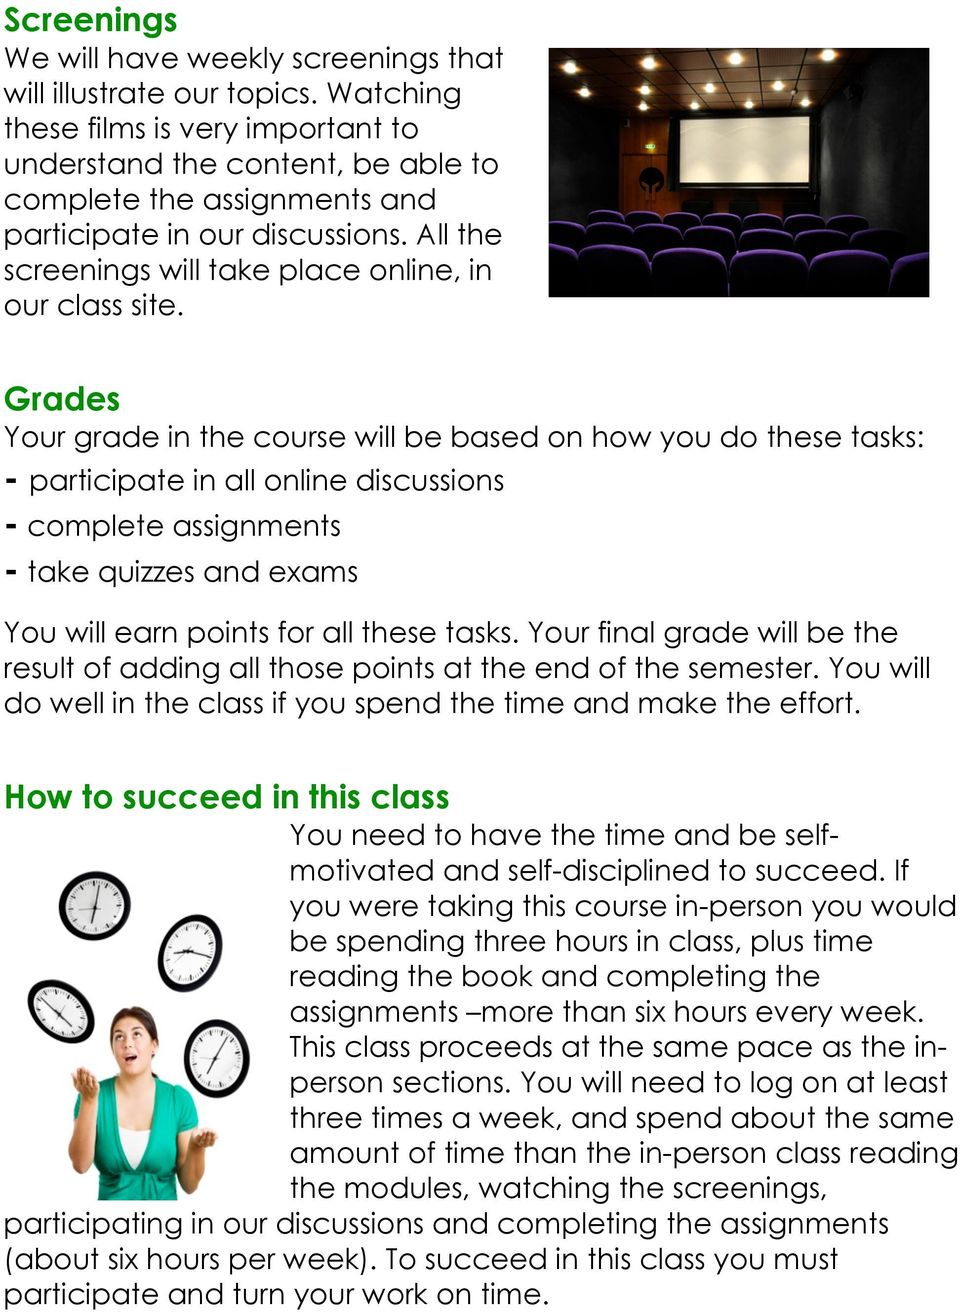 Grades Your grade in the course will be based on how you do these tasks: - participate in all online discussions - complete assignments - take quizzes and exams You will earn points for all these